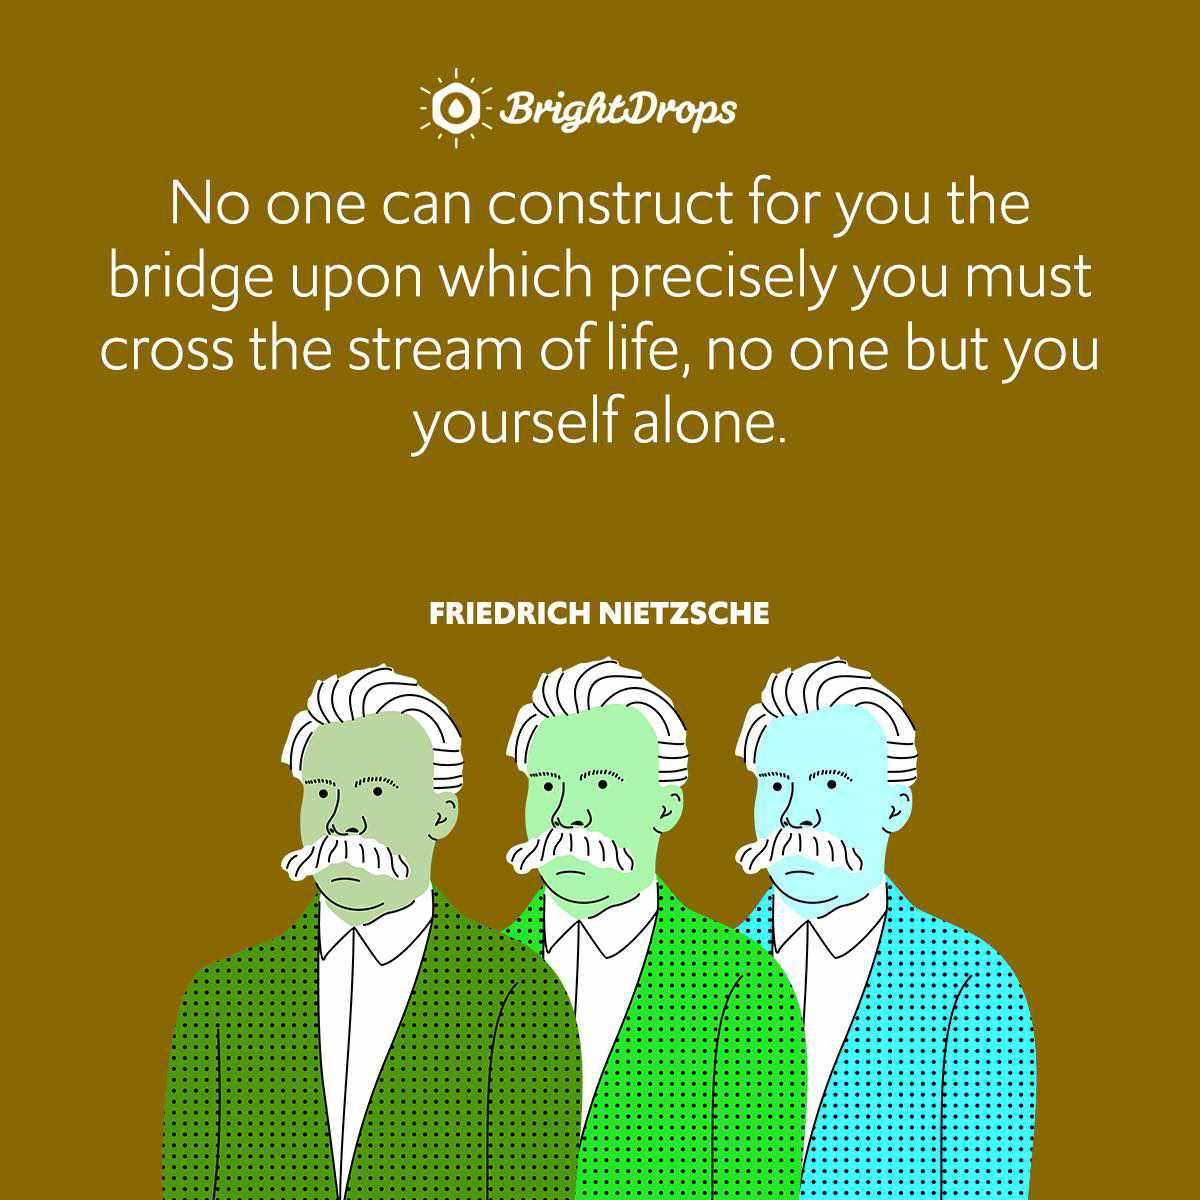 No one can construct for you the bridge upon which precisely you must cross the stream of life, no one but you yourself alone.